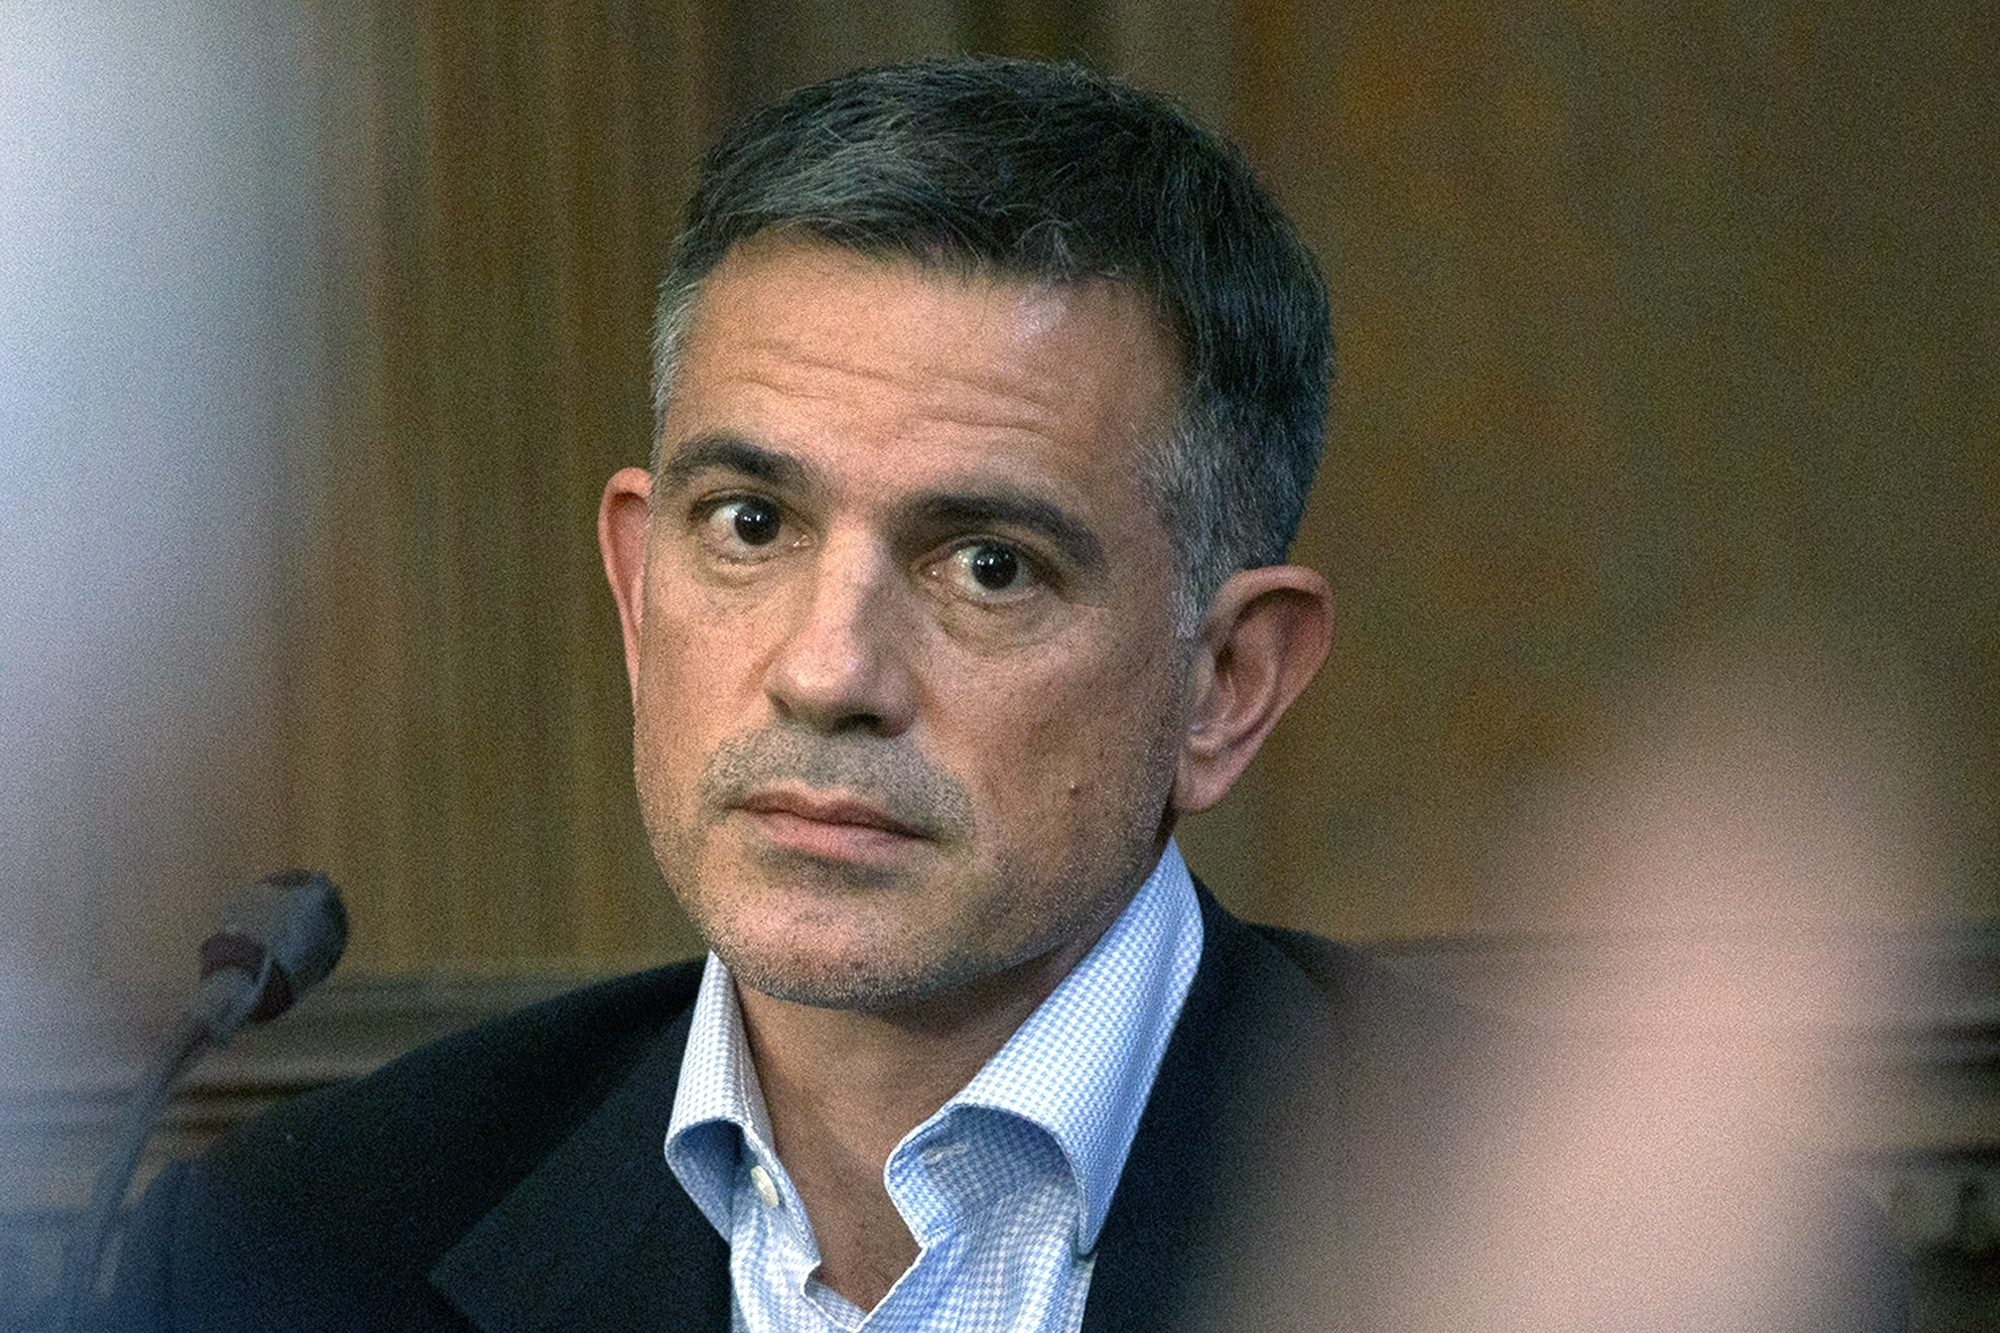 Fotis Dulos is questioned during testimony in a civil case at Hartford Superior Court in Hartford, Conn. on Dec. 4, 2019, brought by Gloria Farber, the mother of Jennifer Farber Dulos, his estranged wife who disappeared in May.